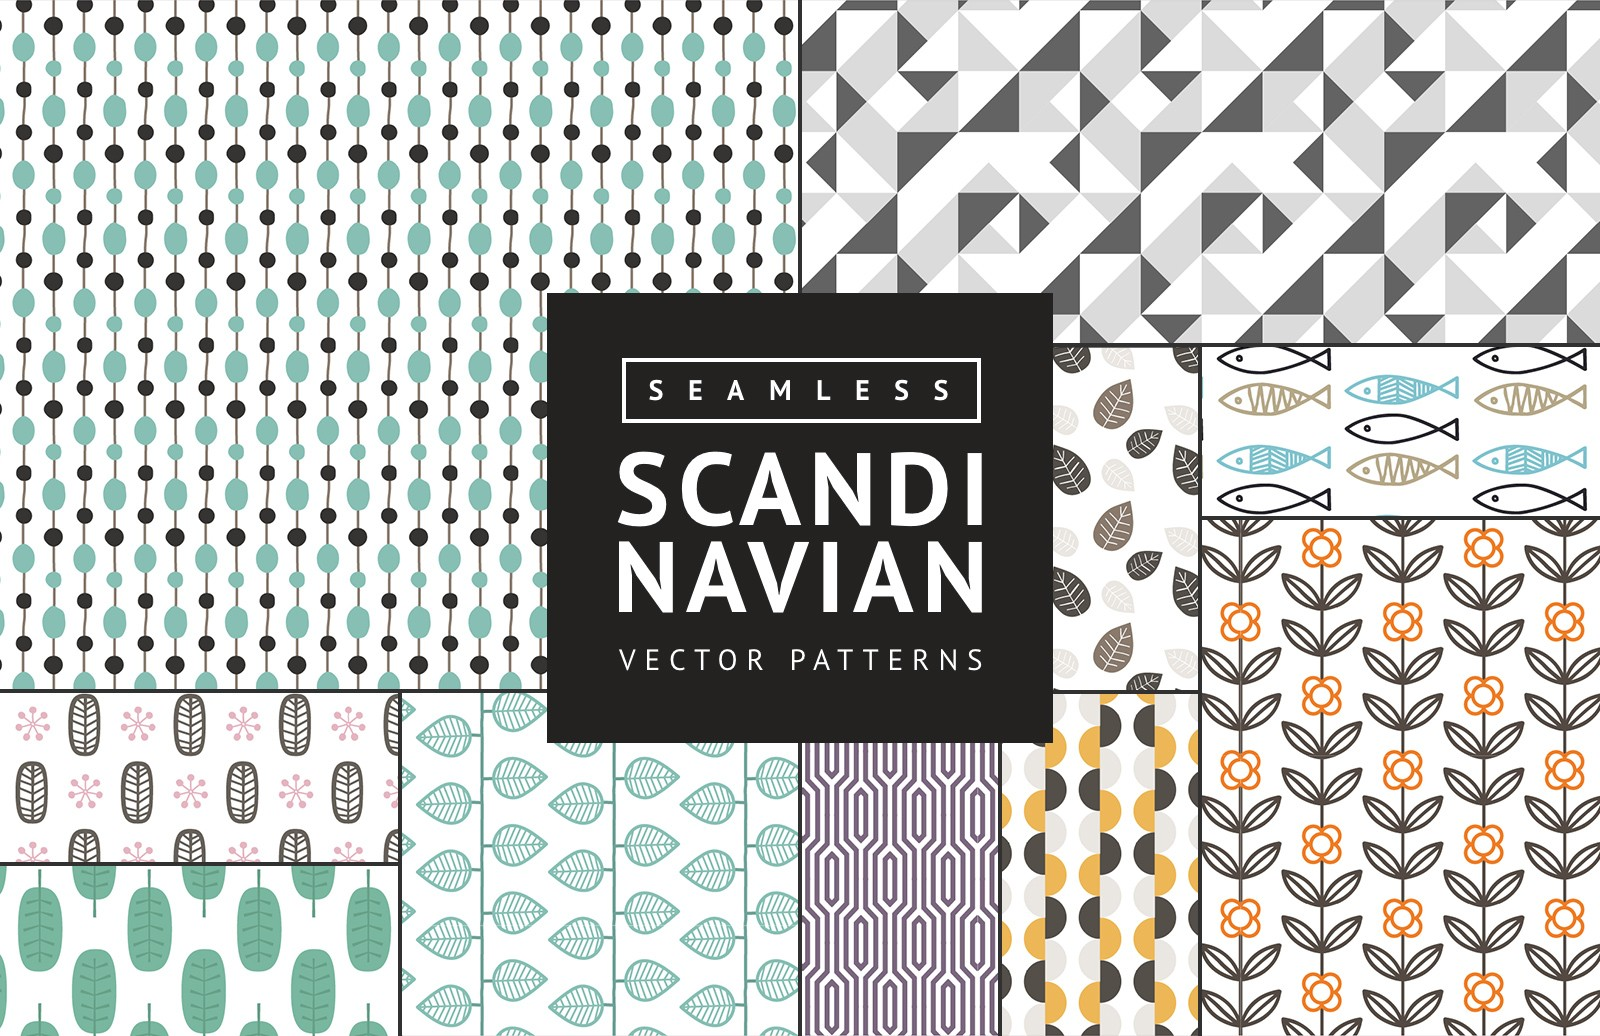 Seamless Scandinavian Vector Patterns 1